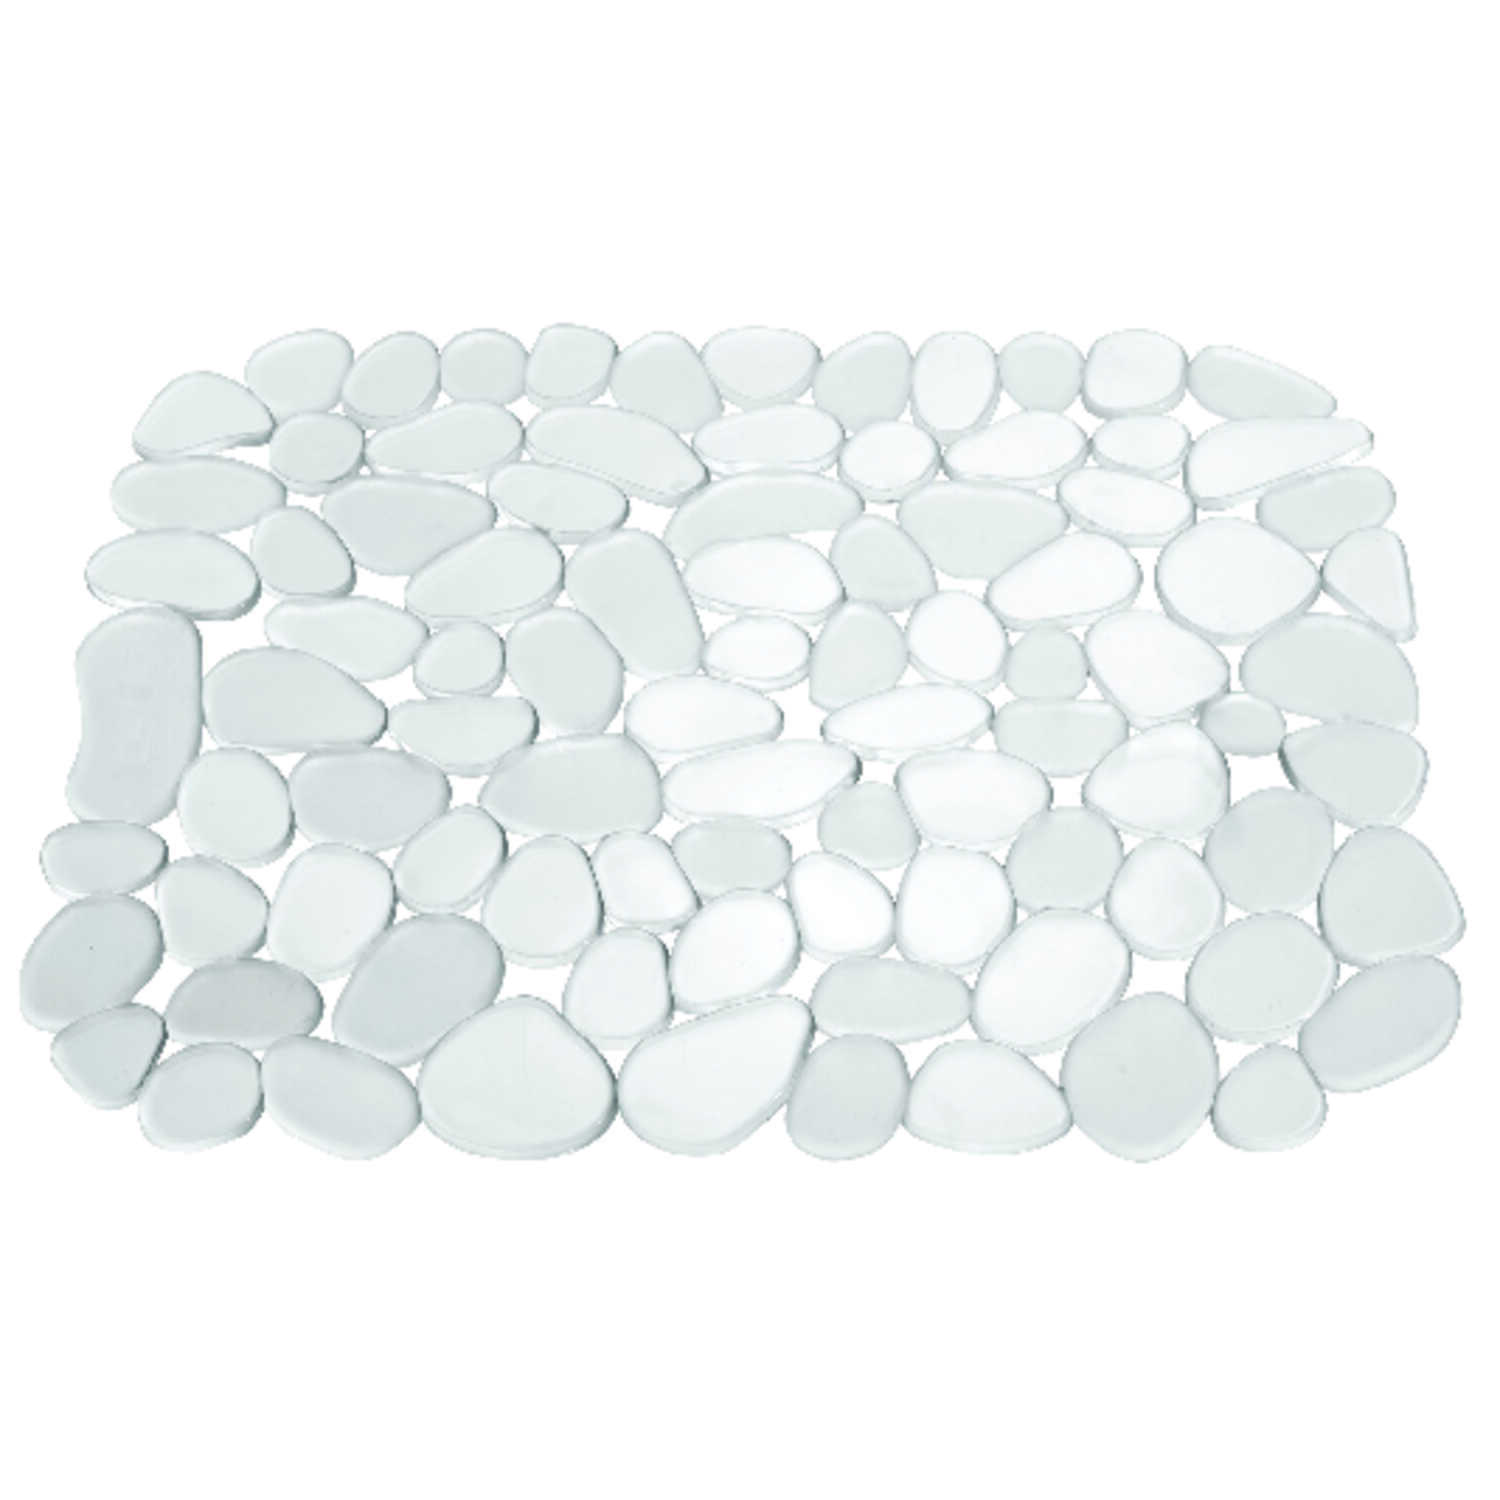 InterDesign  10.8 in. H x 10.8 in. W x 12.3 in. L Sink Mat  Plastic  Clear